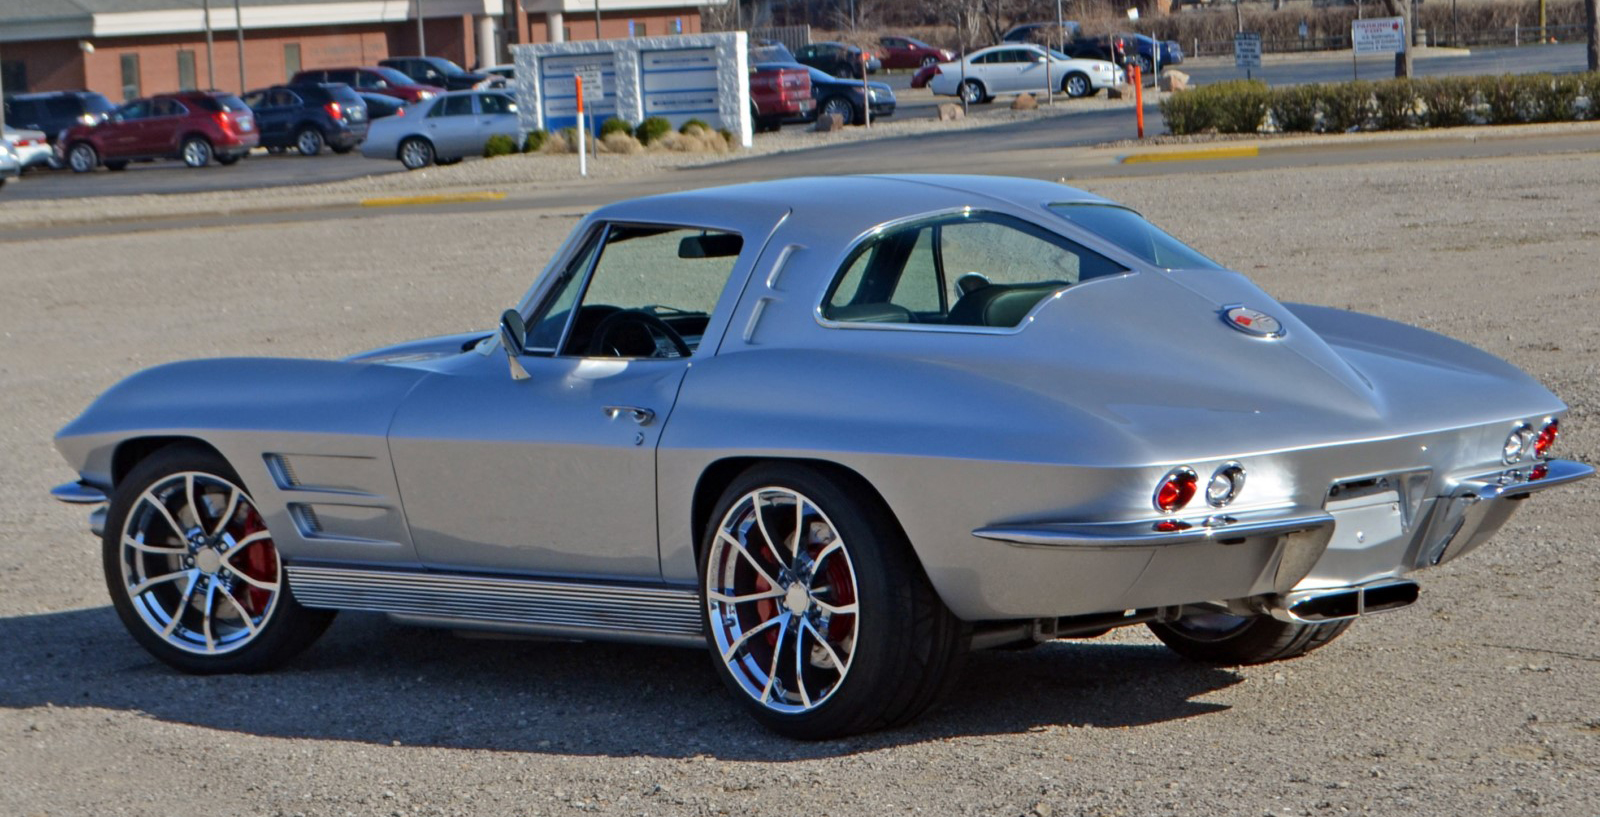 1963 Chevrolet Corvette Pro-Touring Split Window Coupe